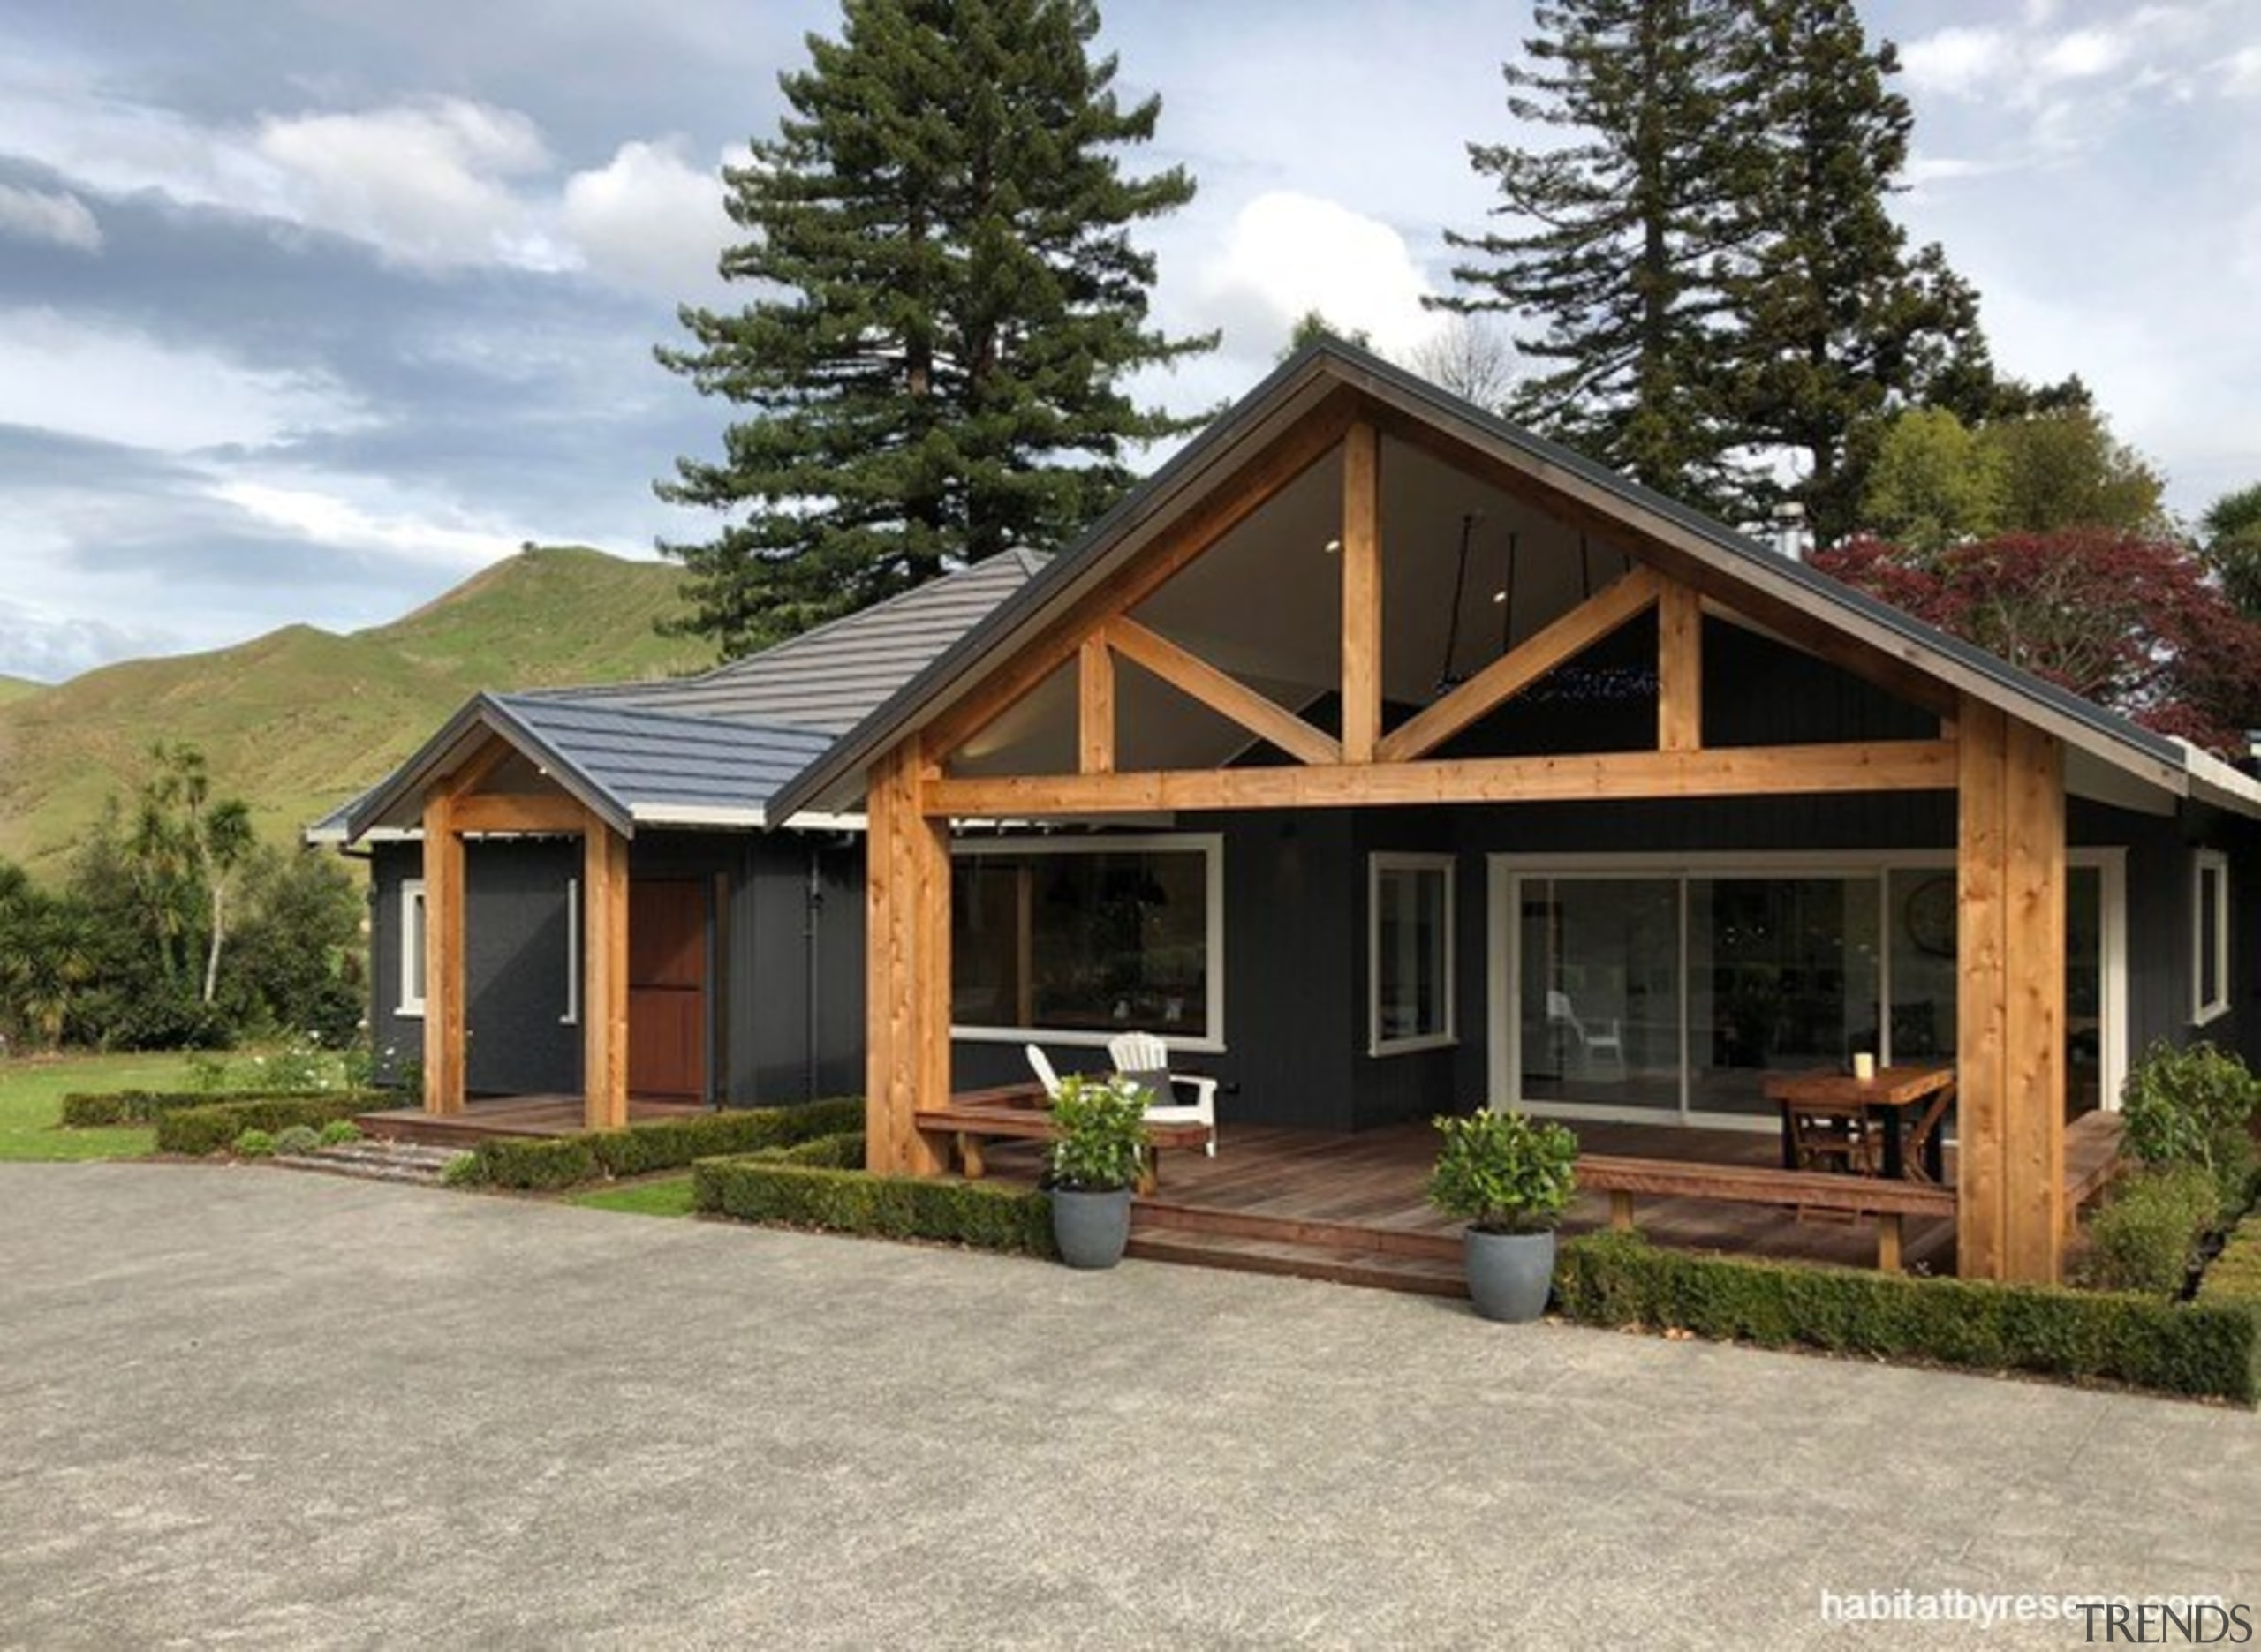 After the renovation - architecture | building | architecture, building, cottage, estate, facade, farmhouse, home, house, landscape, log cabin, property, real estate, rest area, roof, room, shed, siding, tree, wood, gray, brown